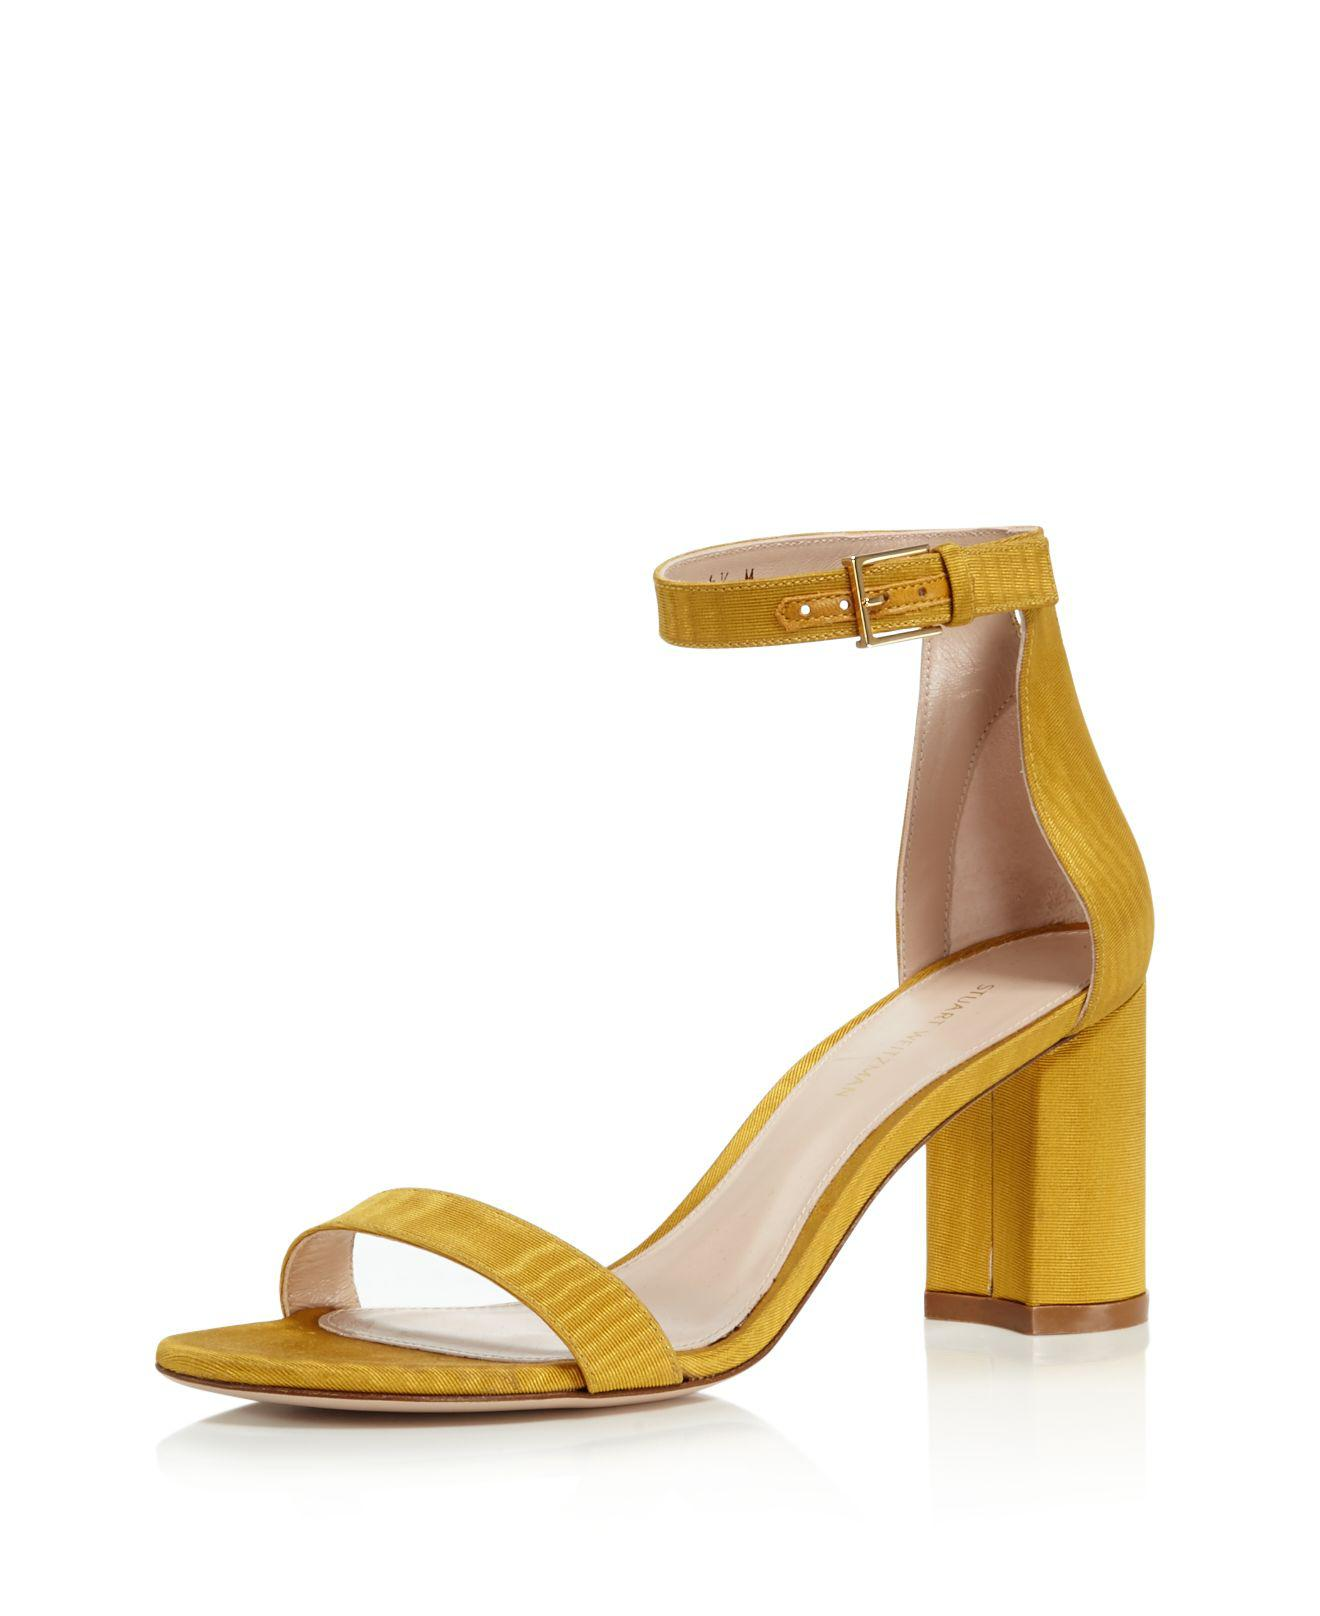 Stuart Weitzman Women's Lessnudist Grosgrain Ankle Strap Sandals 100% Guaranteed Sale Online Free Shipping Fast Delivery Authentic Best Place To Buy ER5Nnsur